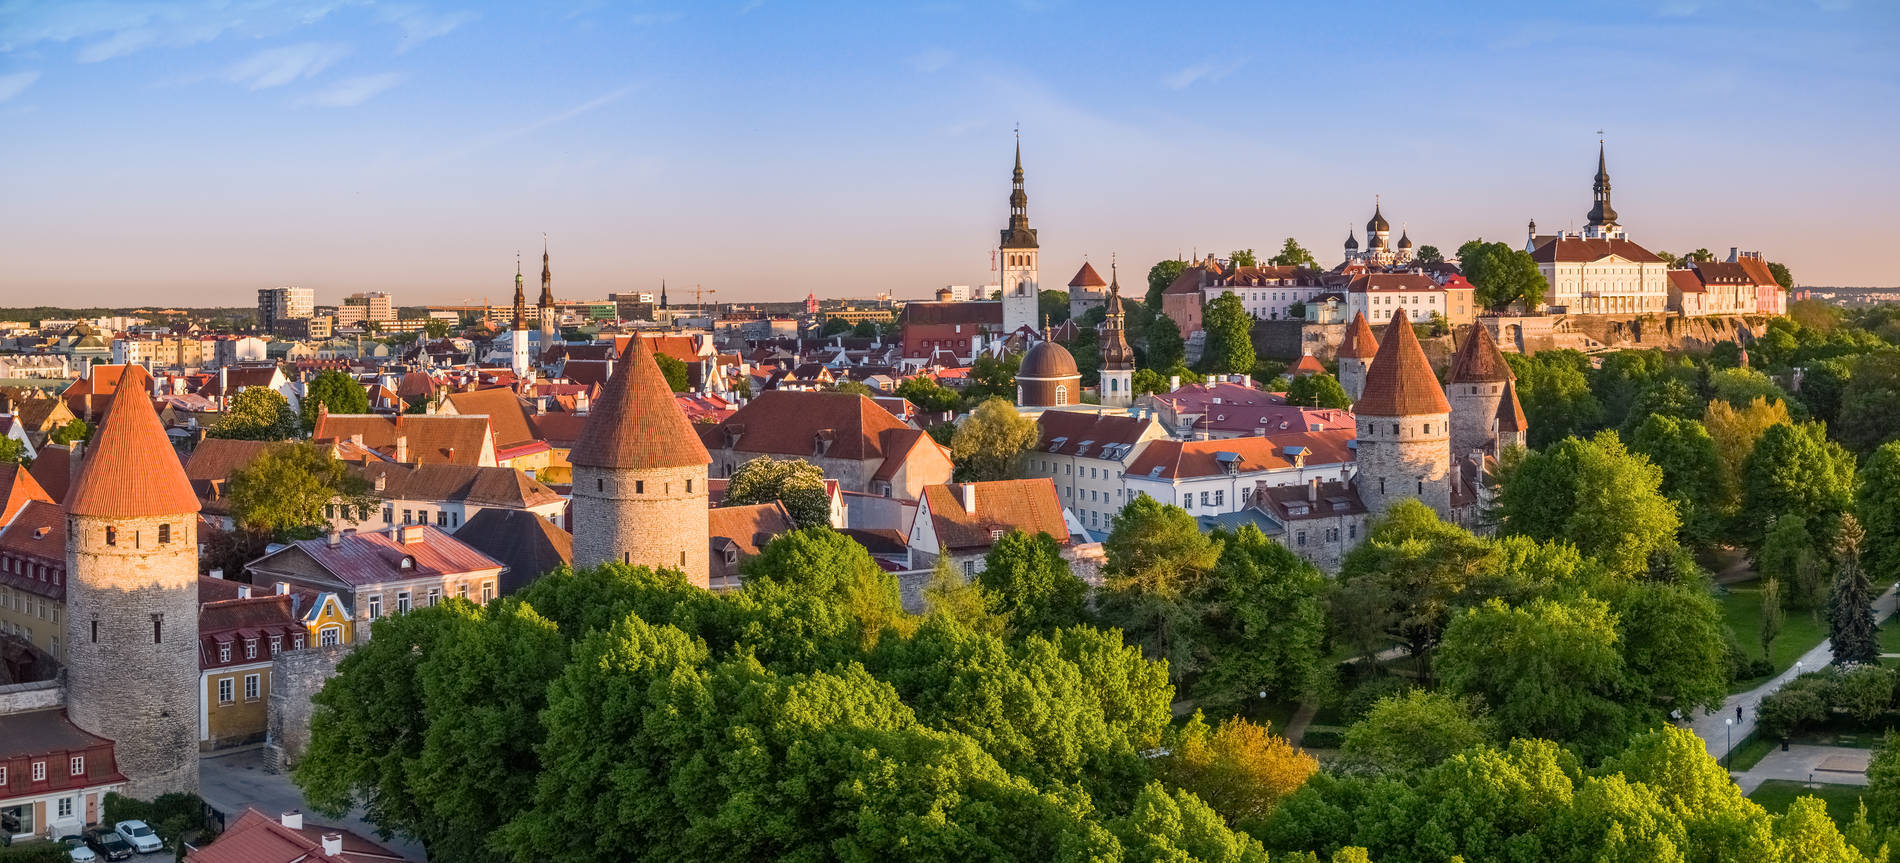 View of the Old Town of Tallinn, Estonia